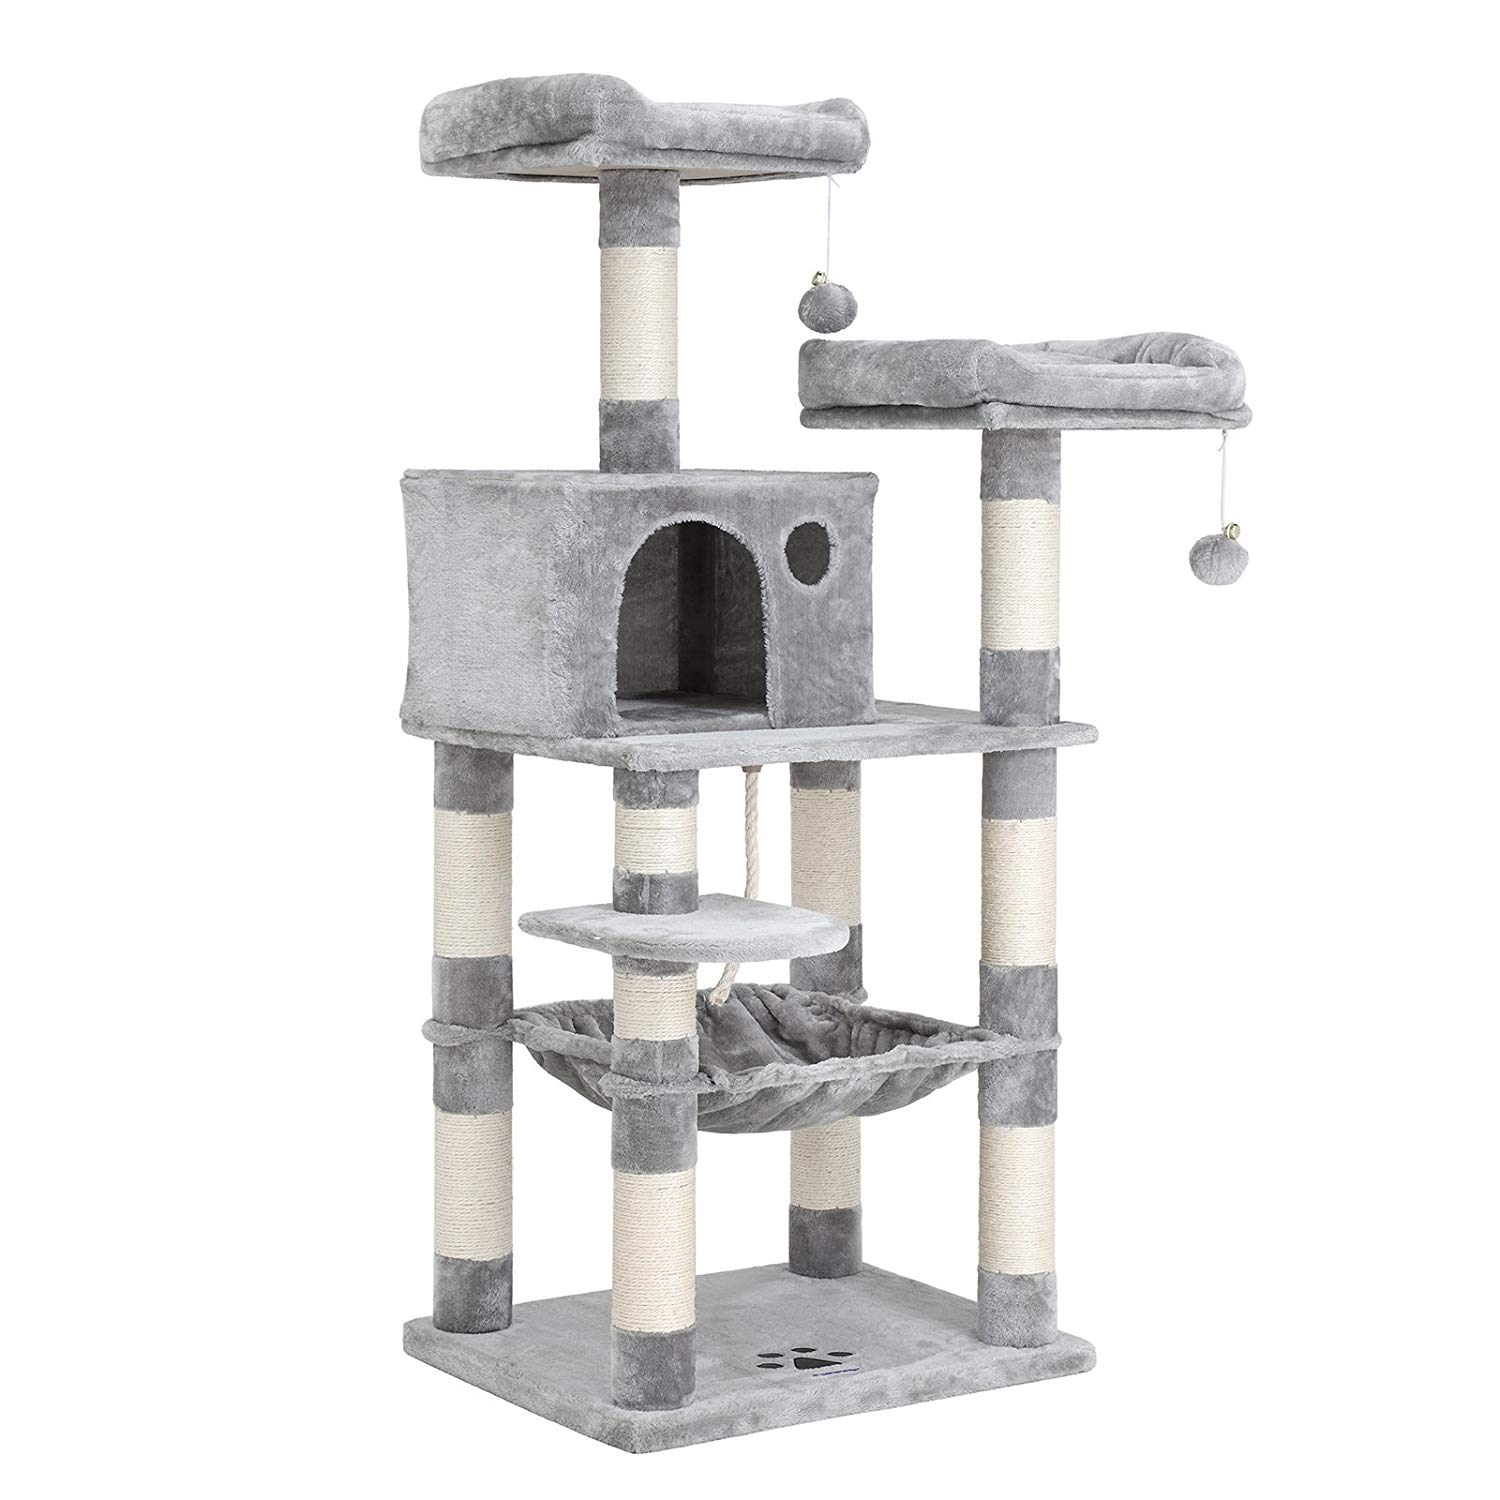 "SONGMICS 58"" Multi-Level Cat Tree with Sisal-Covered Scratching Posts"